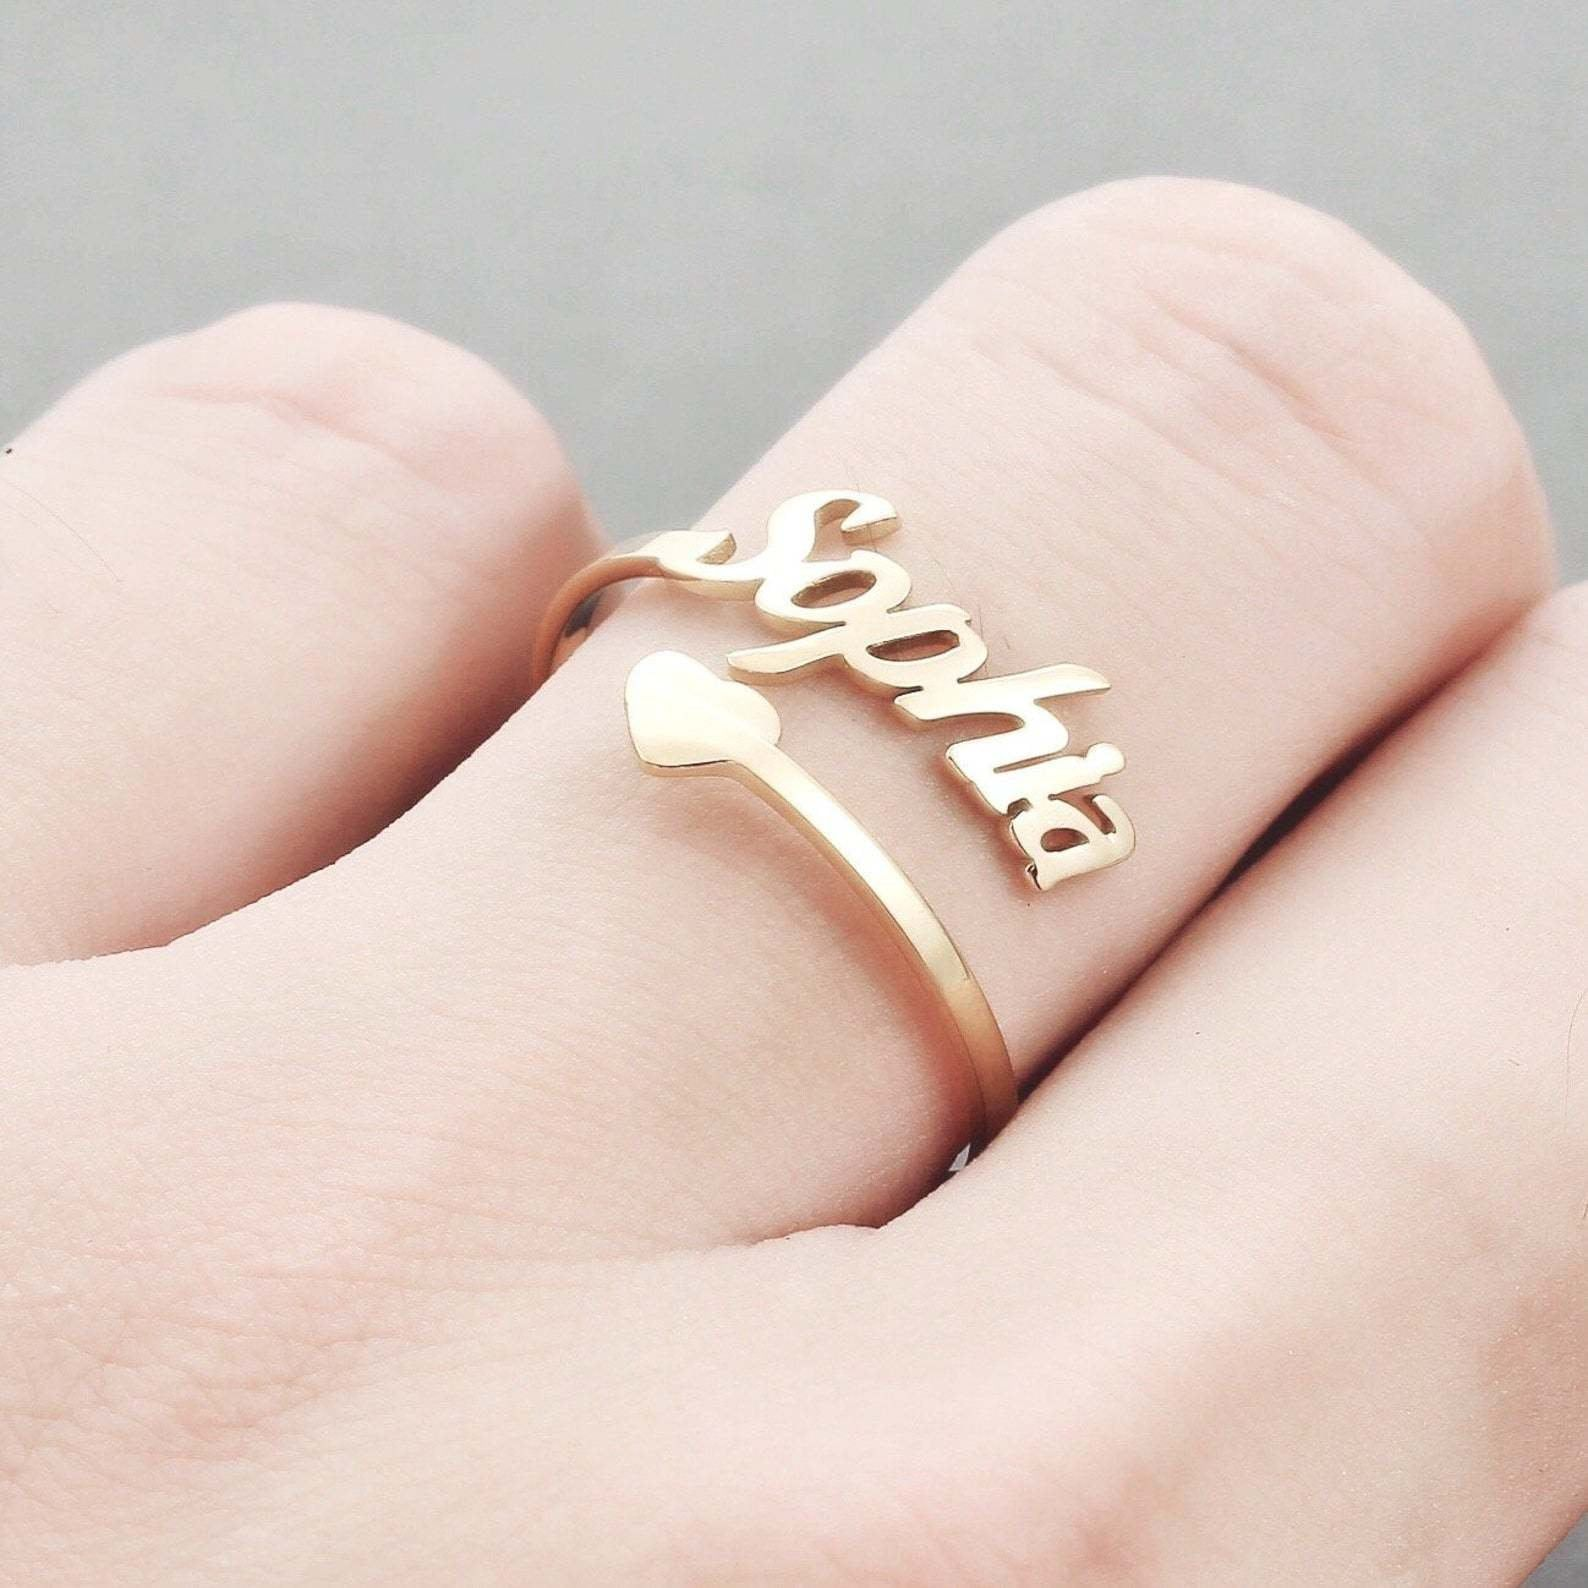 Heart Custom Name Ring in Gold / Silver / Rose Gold, Personalized Open Adjustable Ring Engagement Promise Custom Rings Customized Name . . . . . . . . . . . . . . . . . . . . . . . . . . . . . . About BisYOU BisYOU specializes in 925 sterling silver, brass, and stainless-steel personalized jewelry. We design and craft customized necklaces, bracelets, earrings, and rings for our valued customers. With 30 years in fashion jewelry and accessories, we are motivated to bring quality crafts to all of